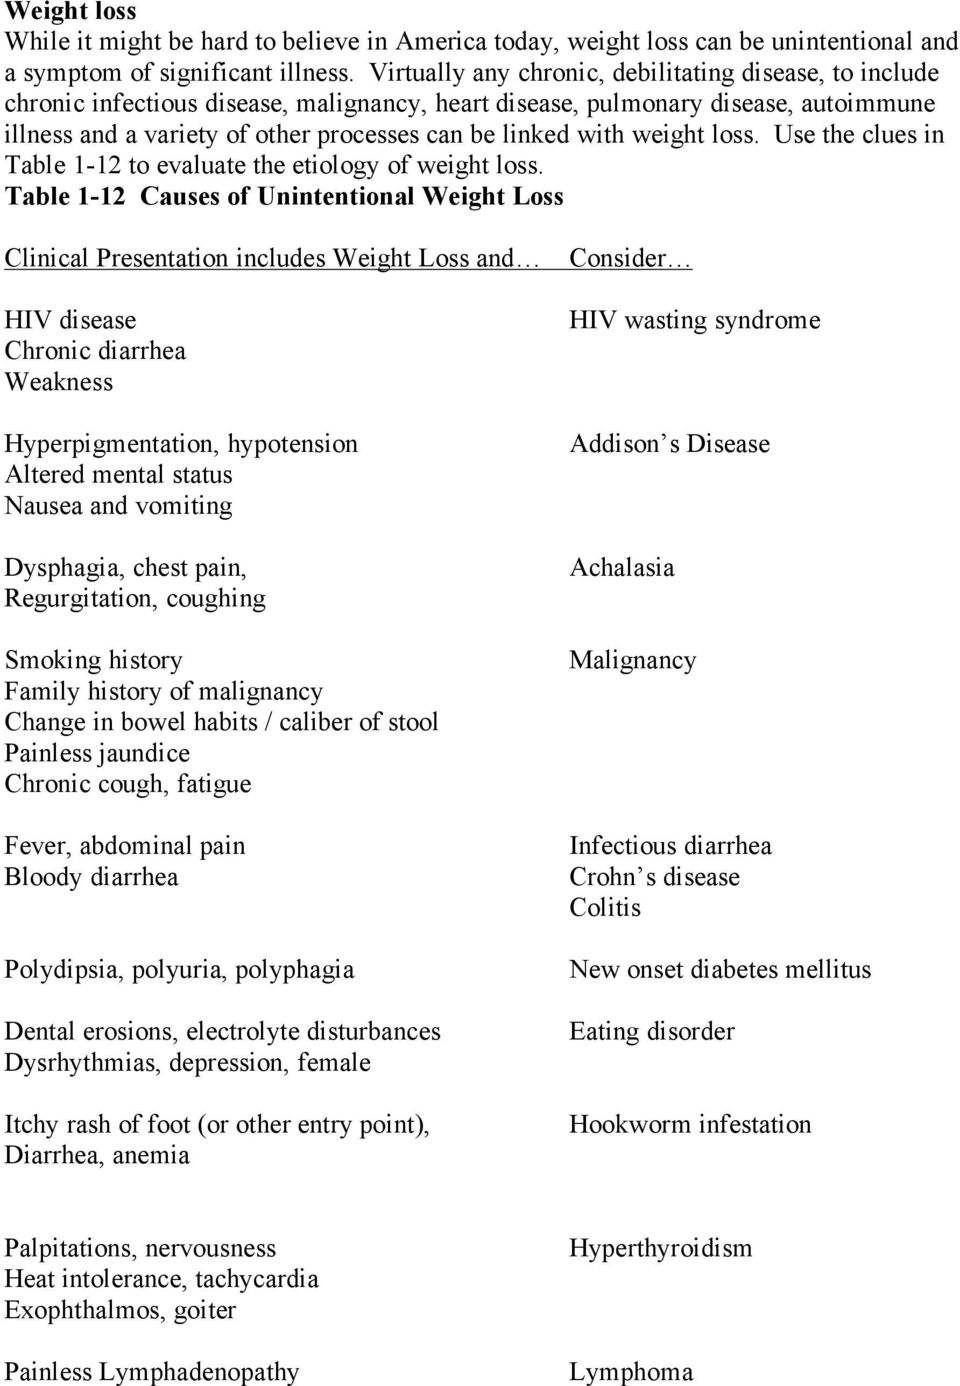 with weight loss. Use the clues in Table 1-12 to evaluate the etiology of weight loss.